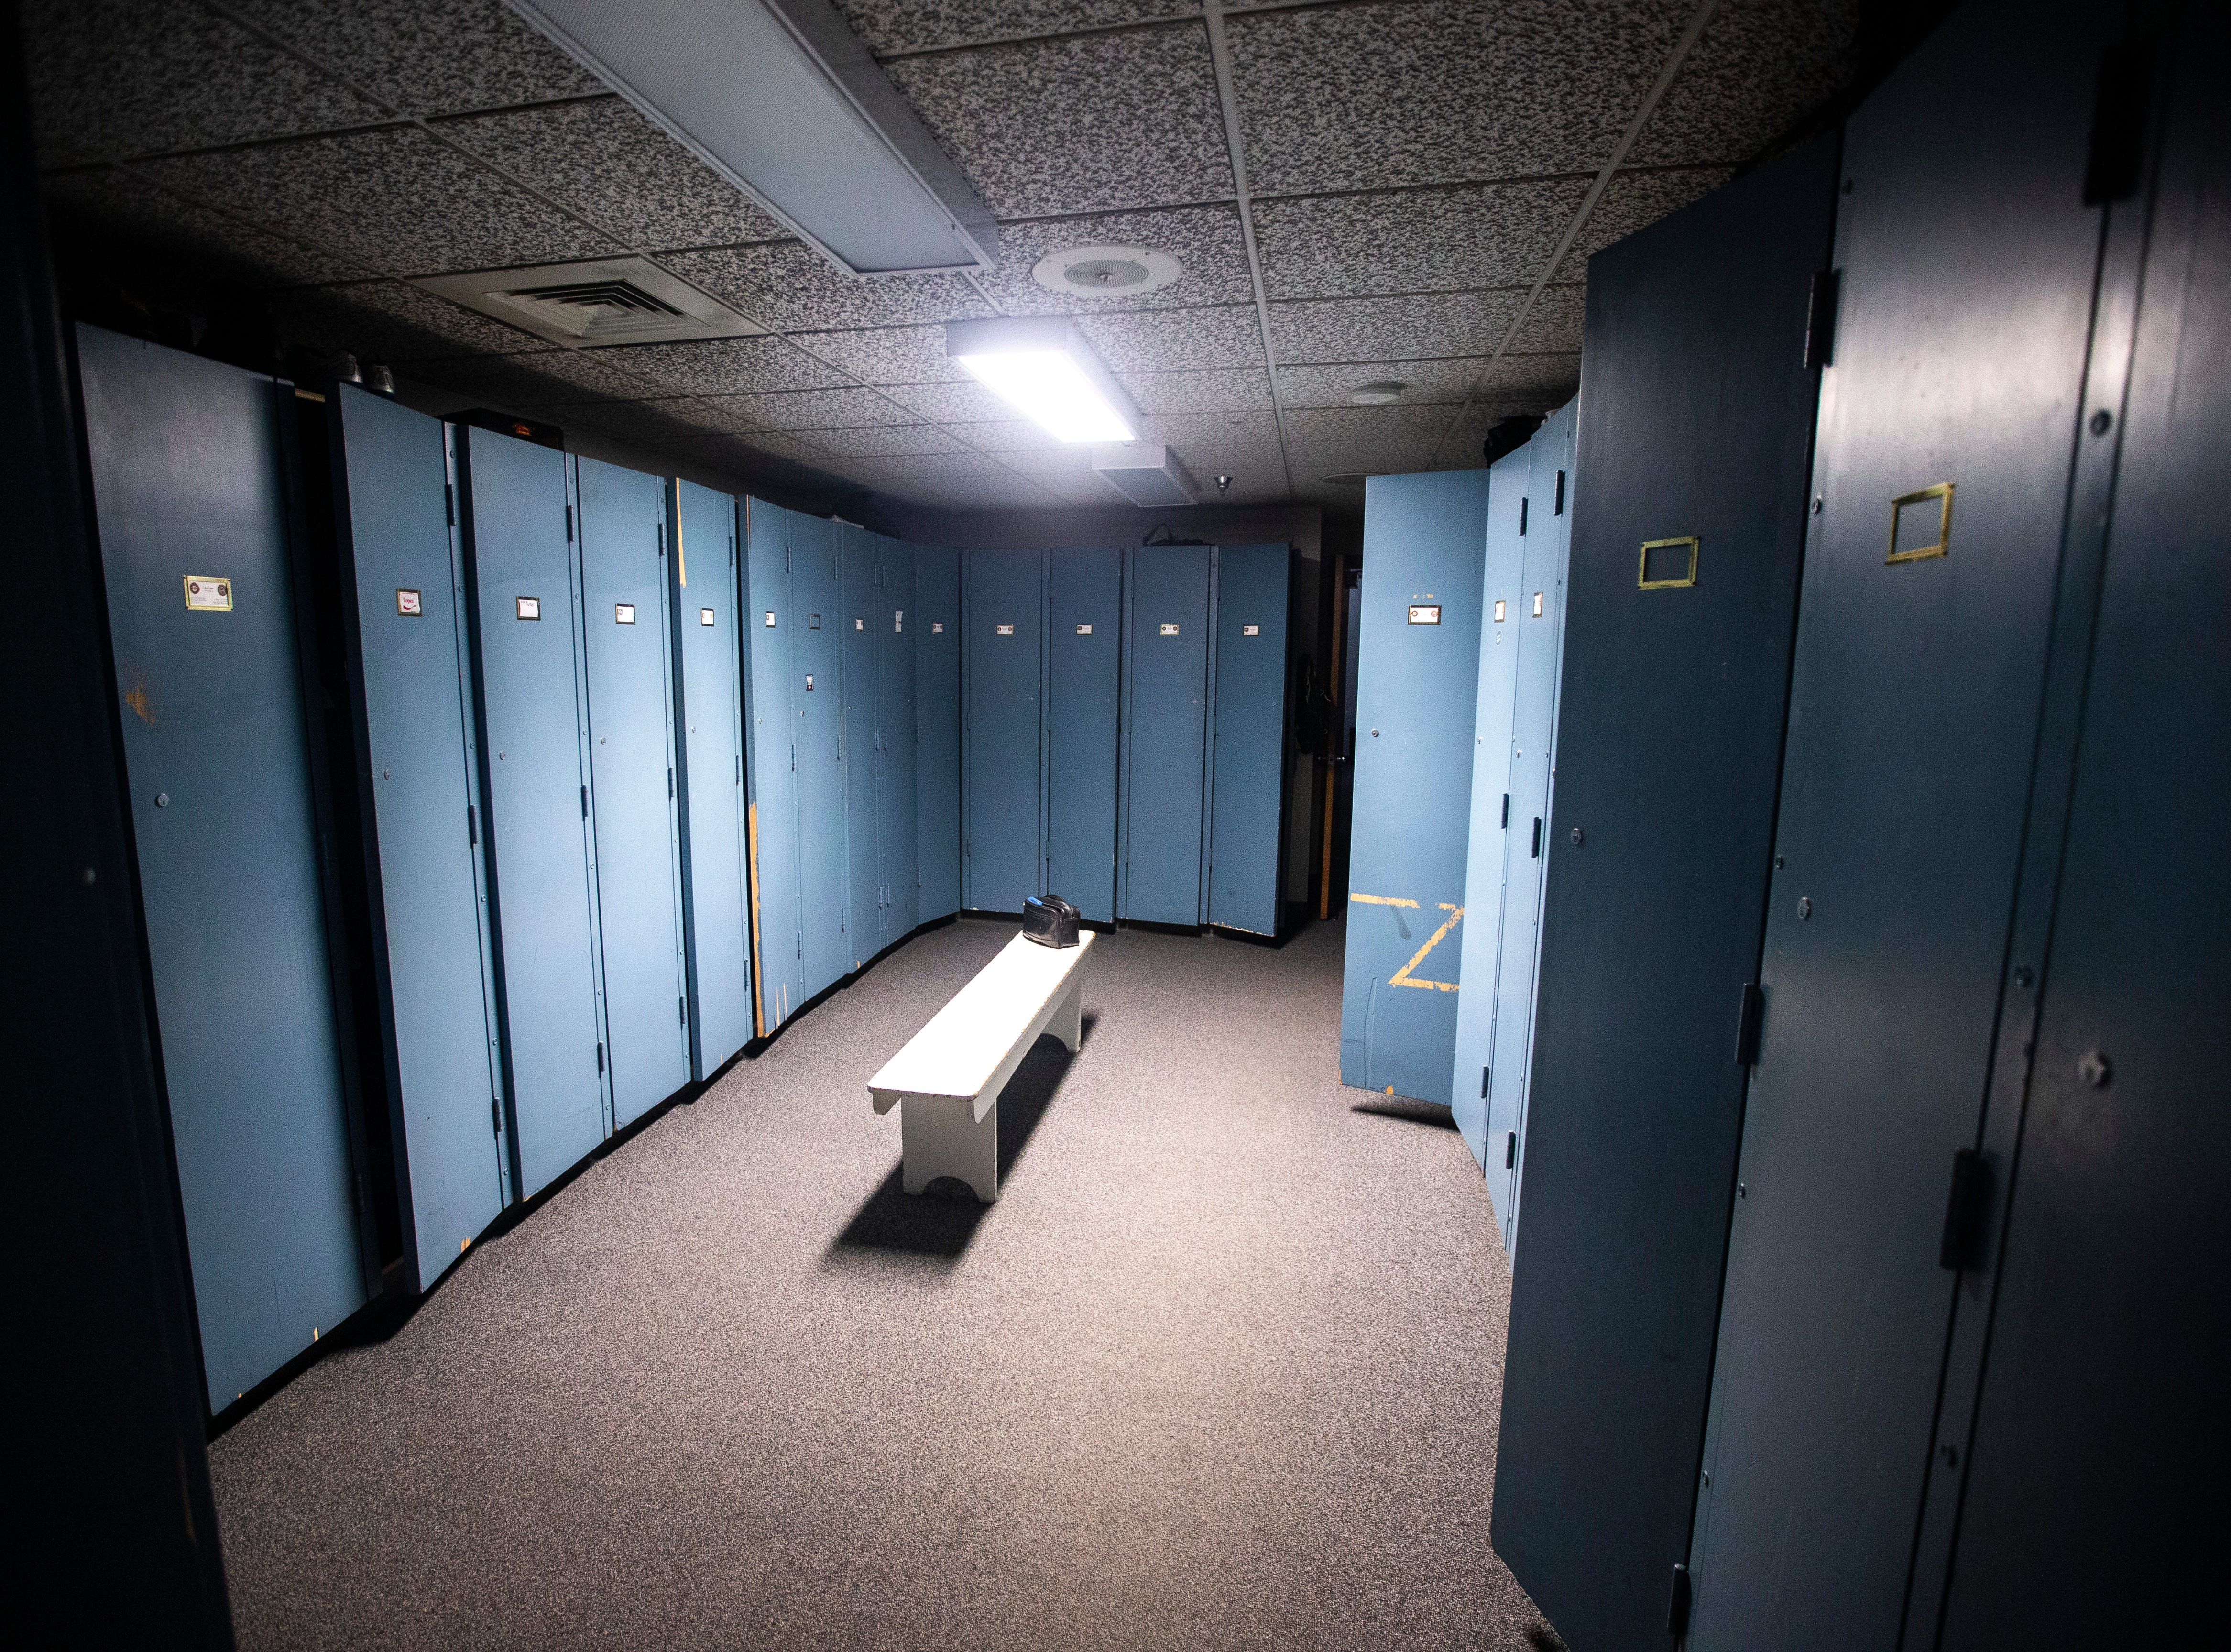 A locker room between the living quarters and an exercise space on Thursday, March 7, 2019, inside Fire Station No. 1, at 10 South Gilbert Street in downtown Iowa City, Iowa. The station was opened January 1, 1961, the same day the previous station of 80 years was retired.